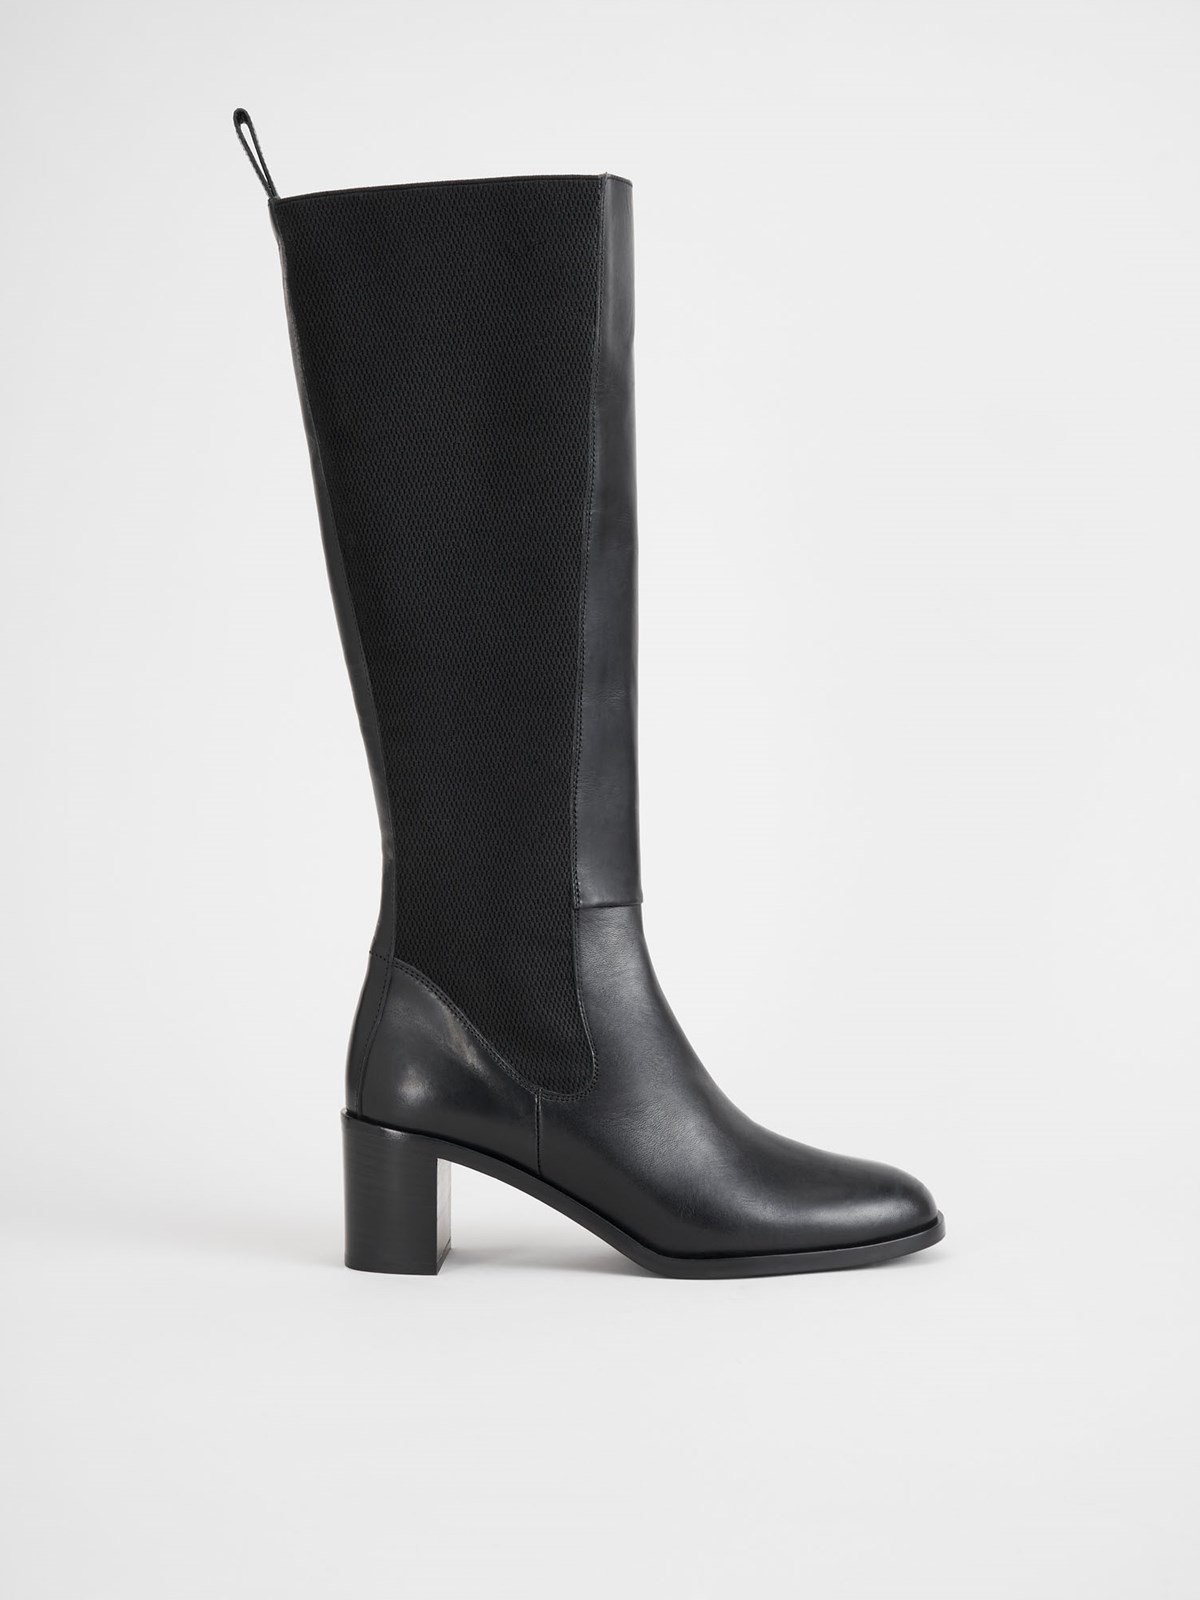 Toricella Black Knee High Boots